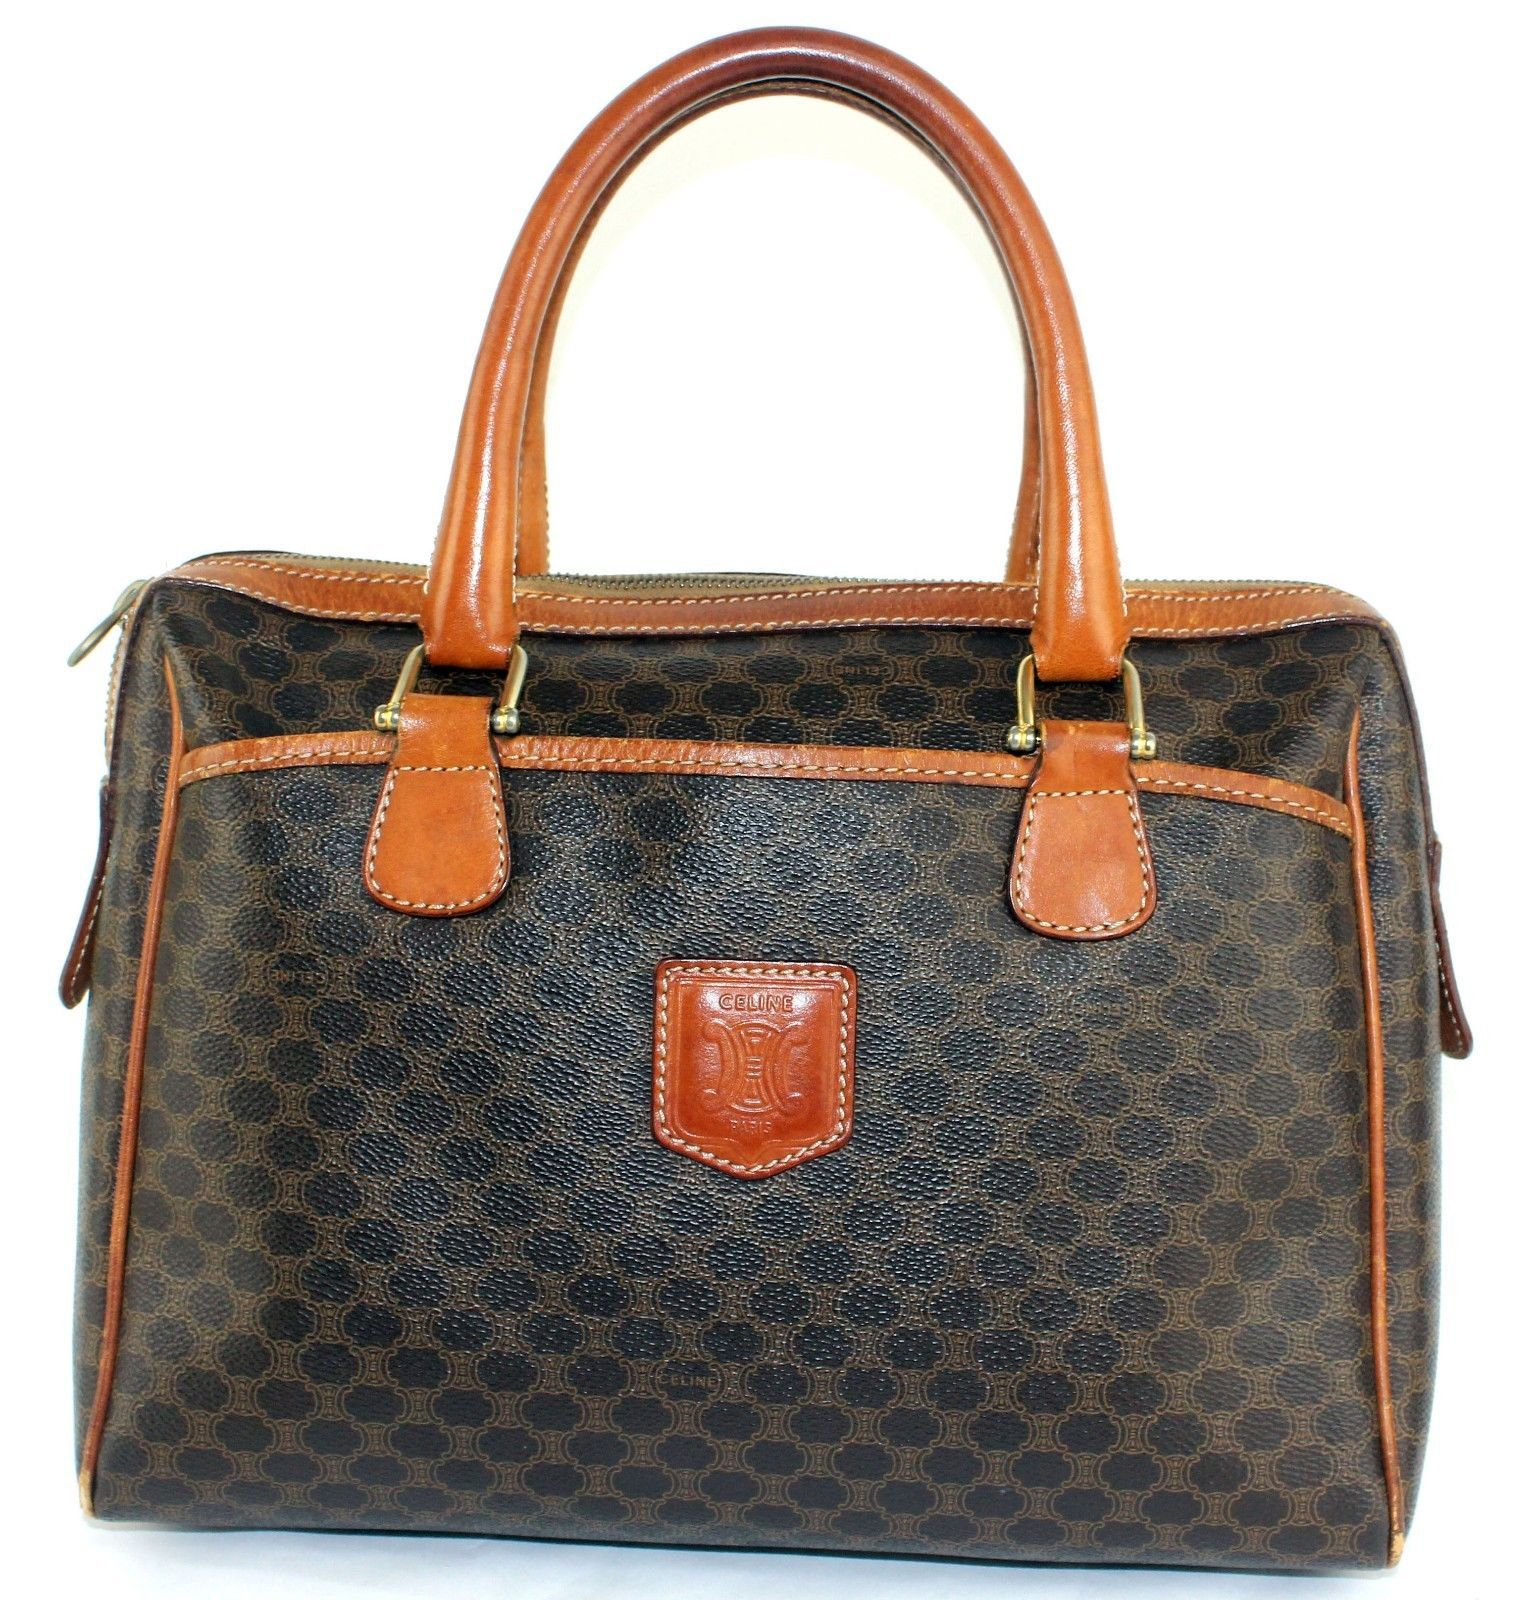 5623941f59 S l1600. S l1600. Previous. Auth CELINE Macadam Coated Canvas   Brown  Leather Multi Pockets Handbag Italy